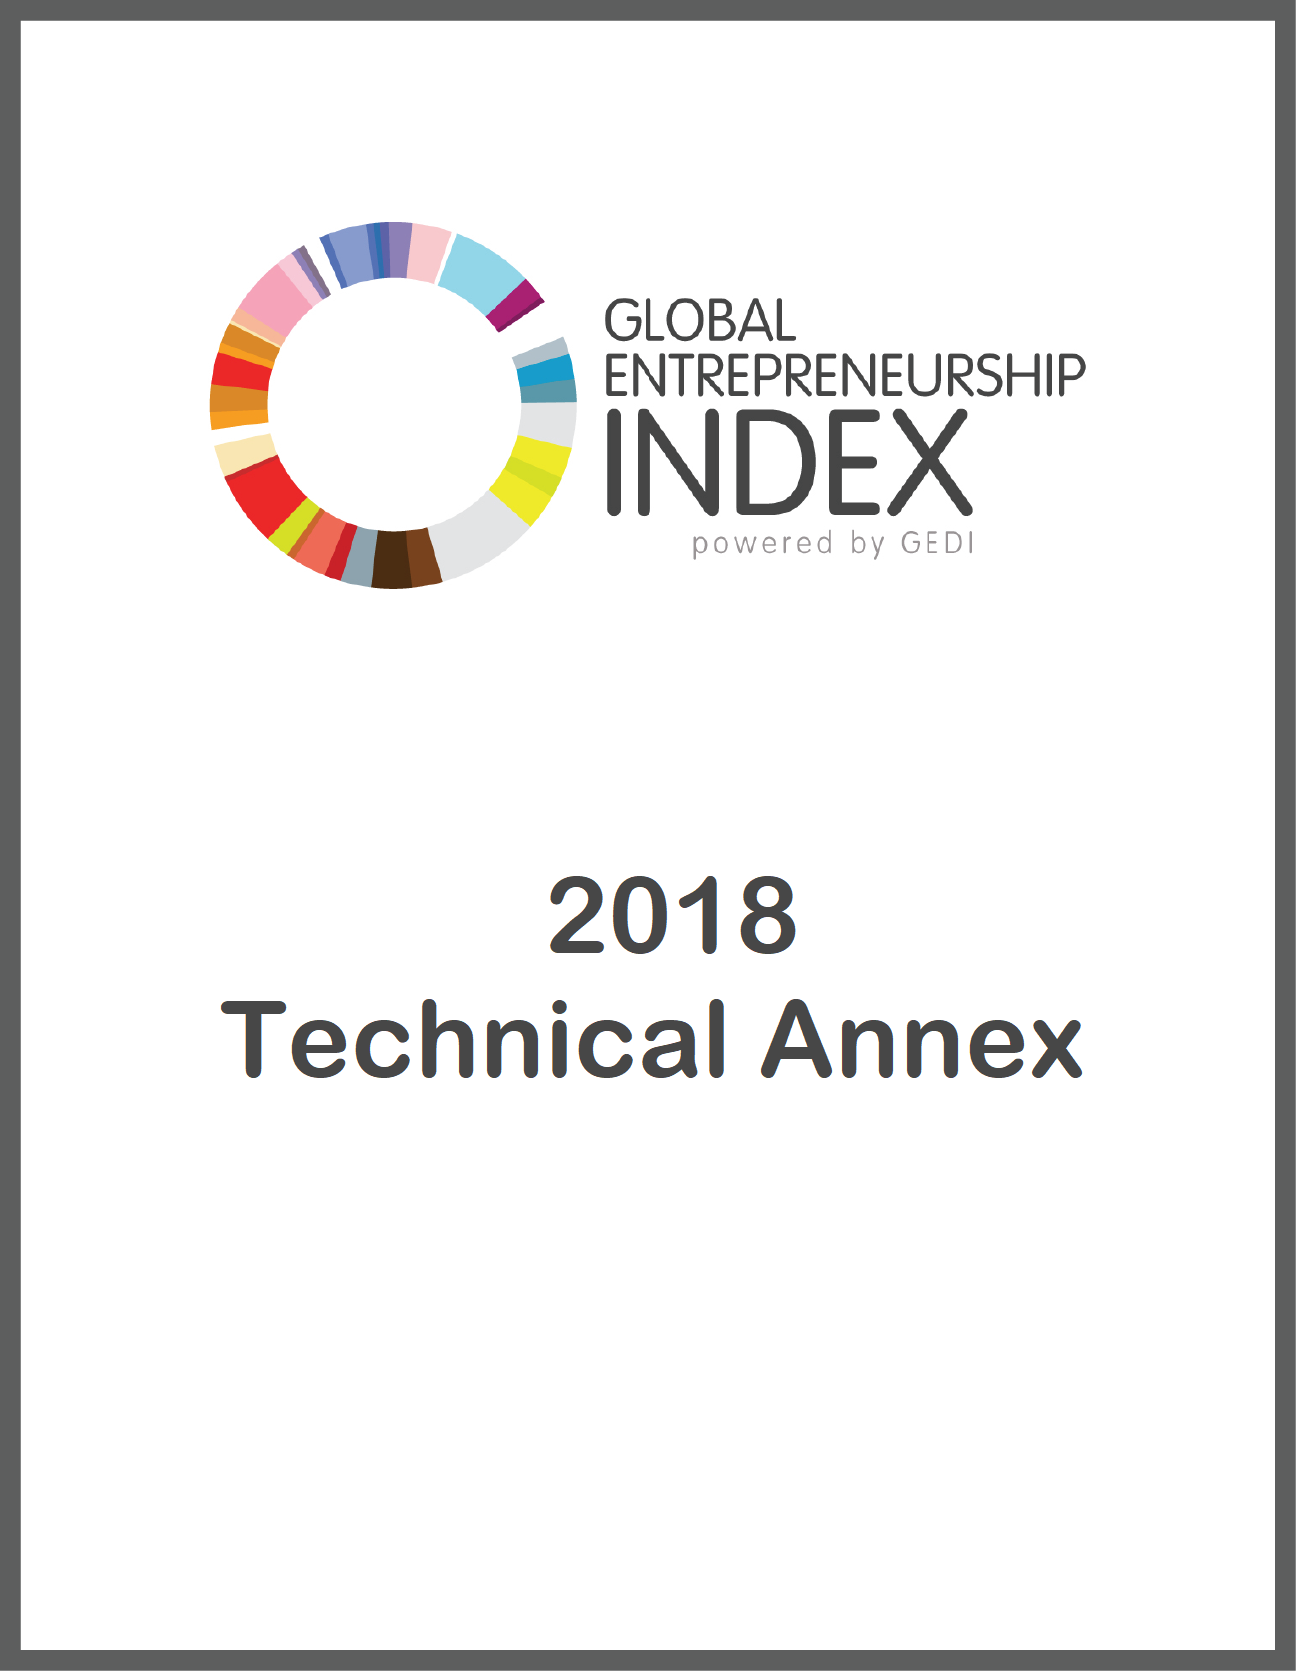 2018 GEI Technical Annex